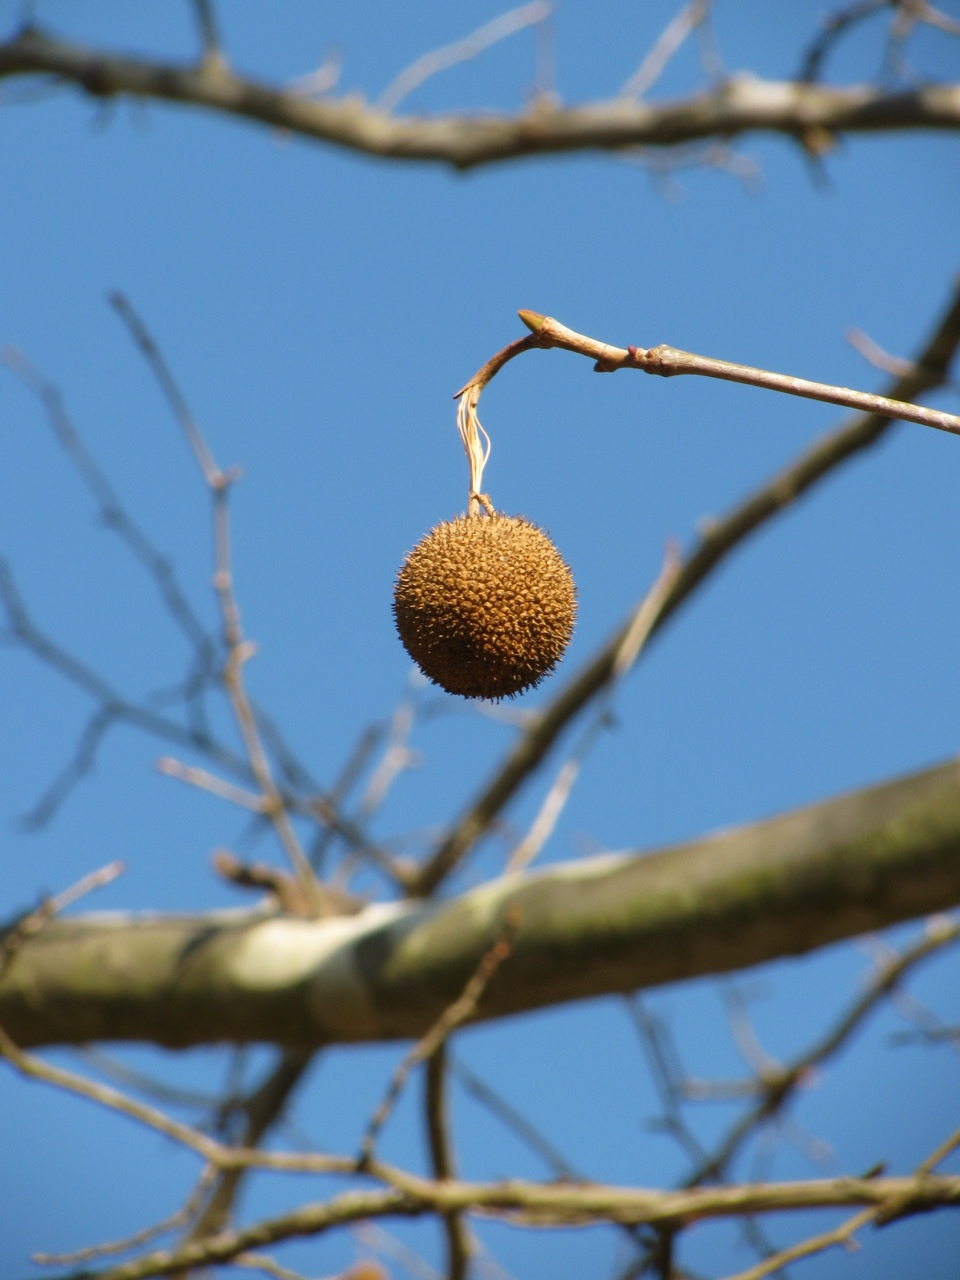 The Scientific Name is Platanus occidentalis. You will likely hear them called American Sycamore. This picture shows the Each fruiting ball consists of numerous, densely-packed, tiny achenes that persist into winter. of Platanus occidentalis